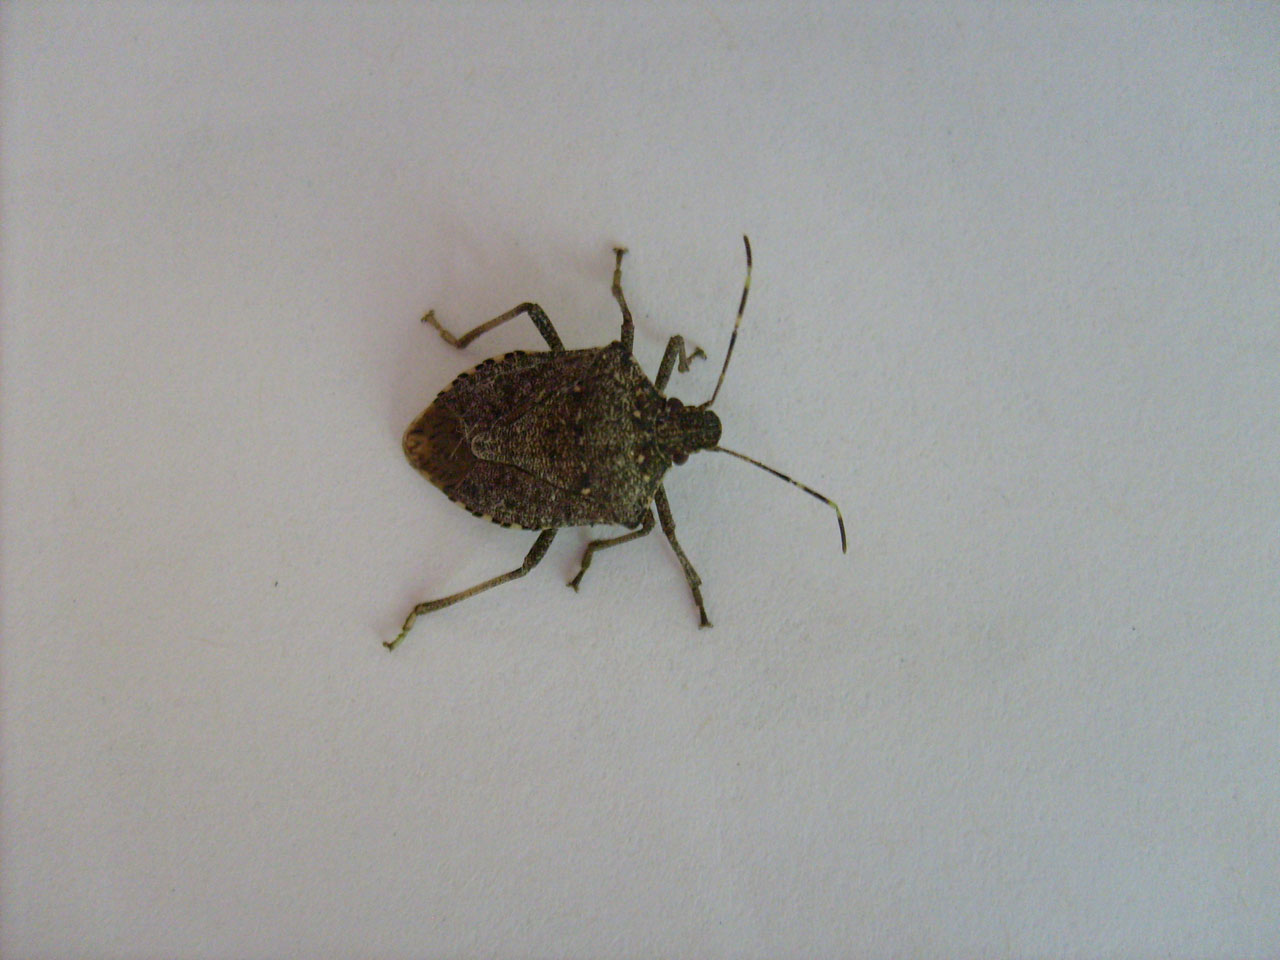 How to Get Rid of Stink Bugs Naturally images